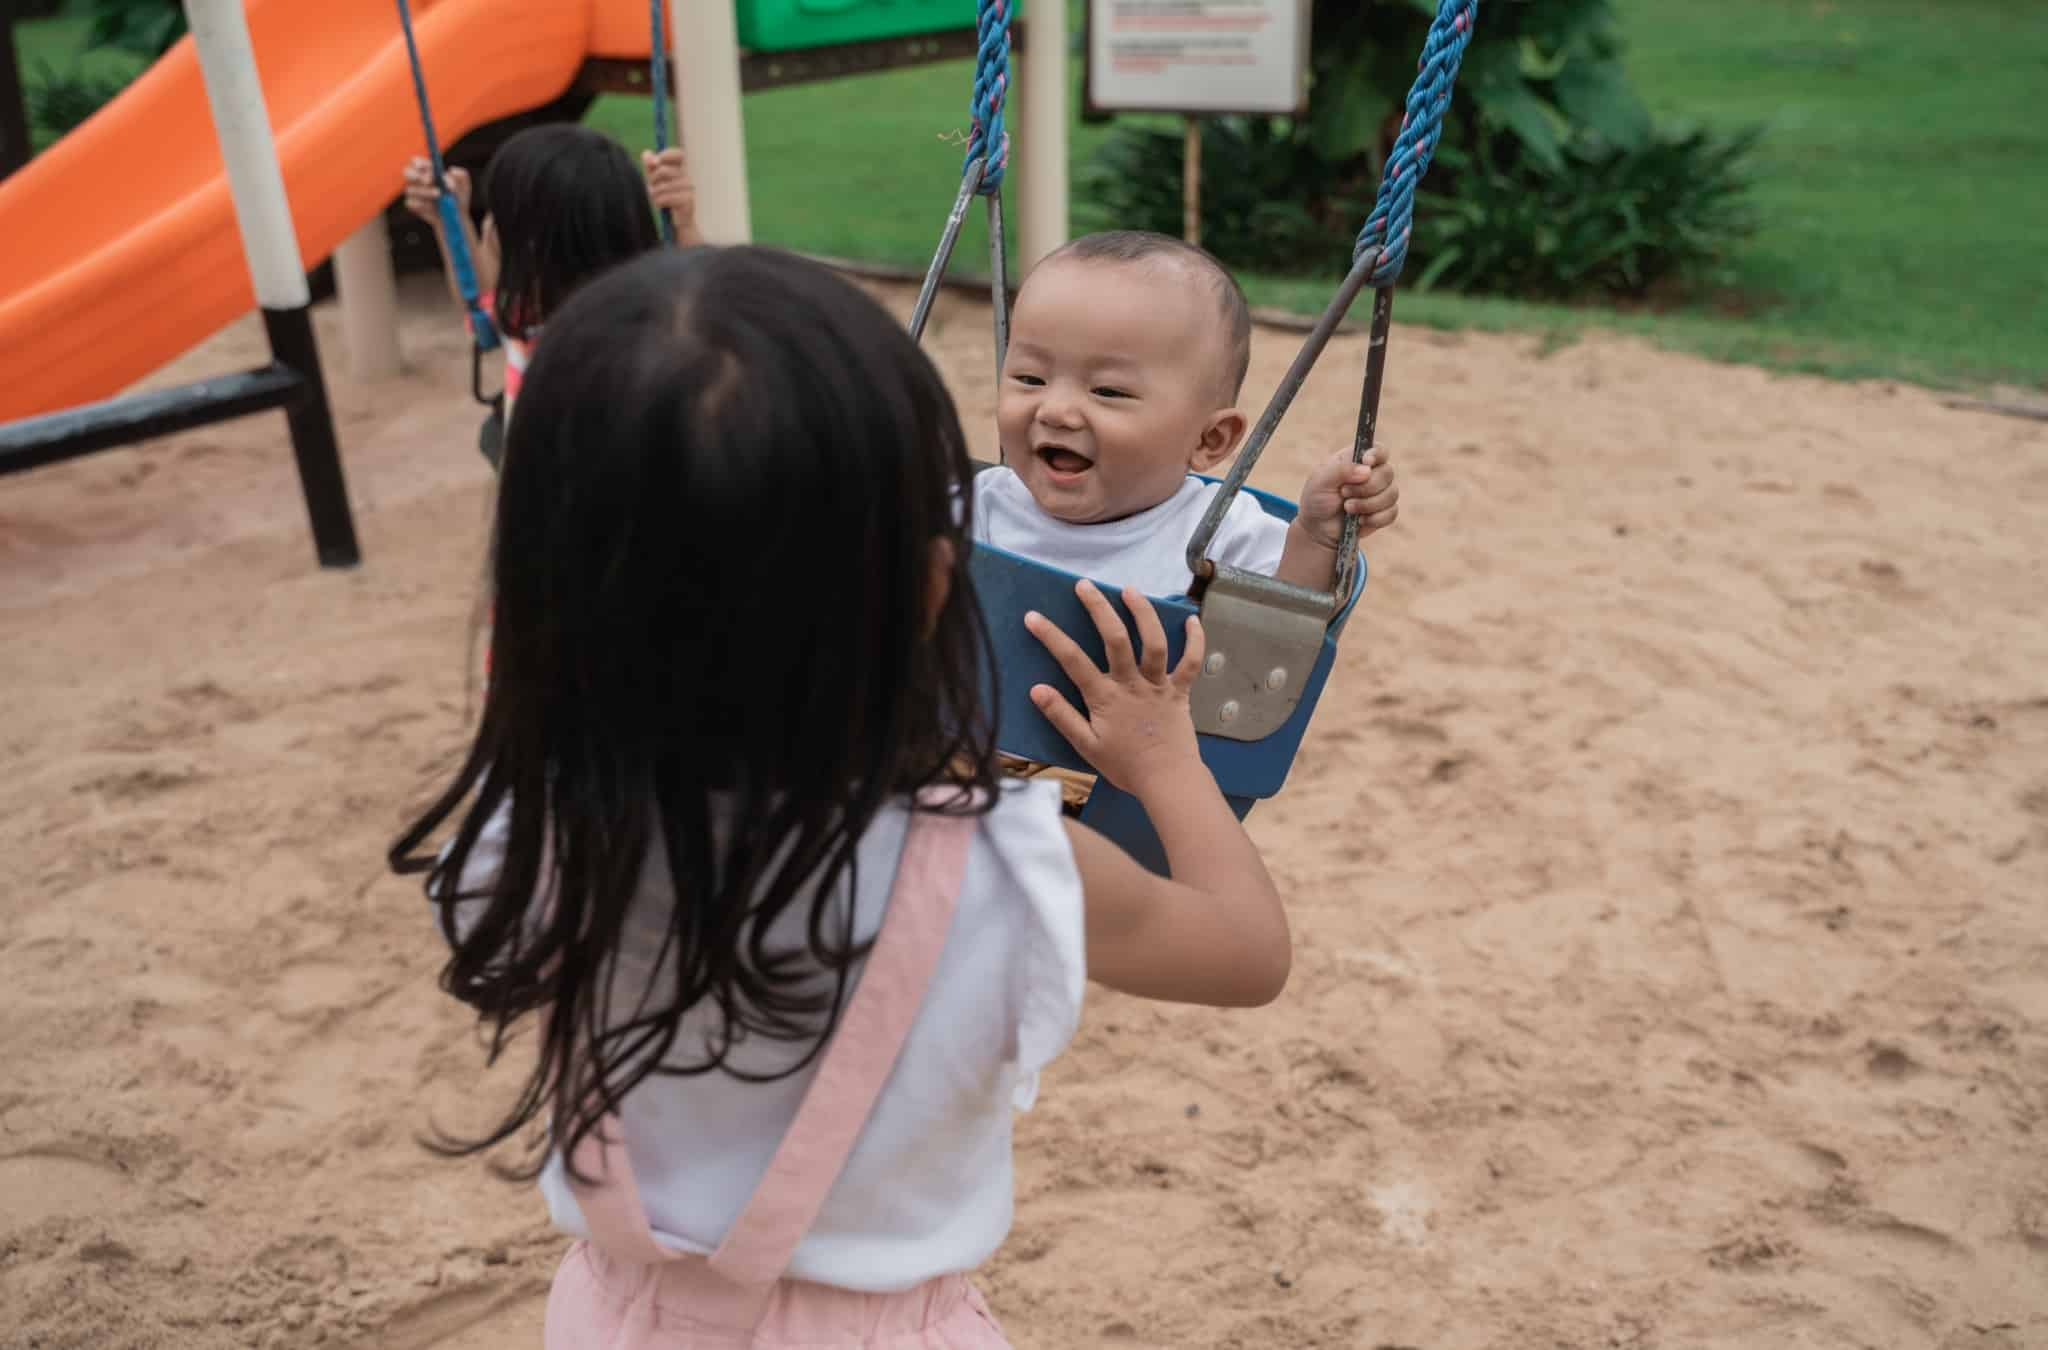 older sibling looking after his baby sister who swings